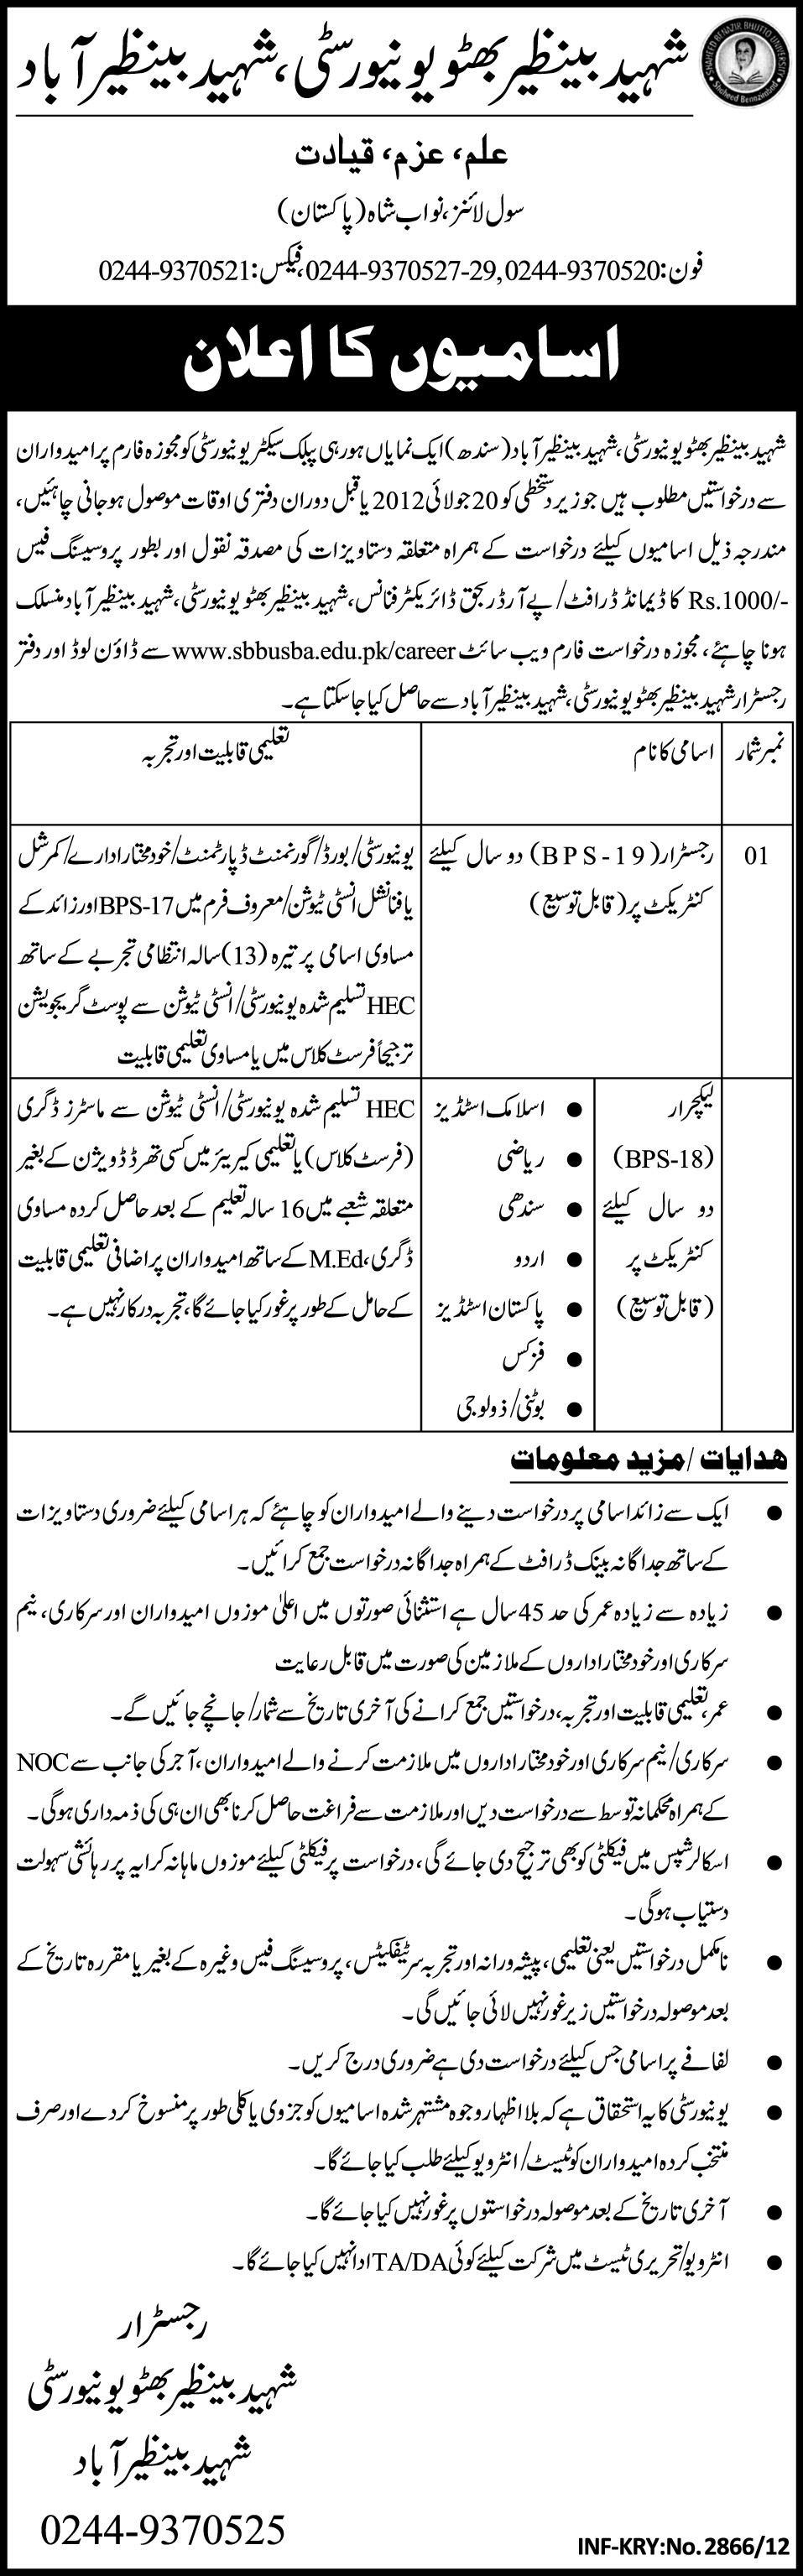 jobs in benazir bhutto university Registrar & Lecturers Jobs In Shaheed Benazir Bhutto University